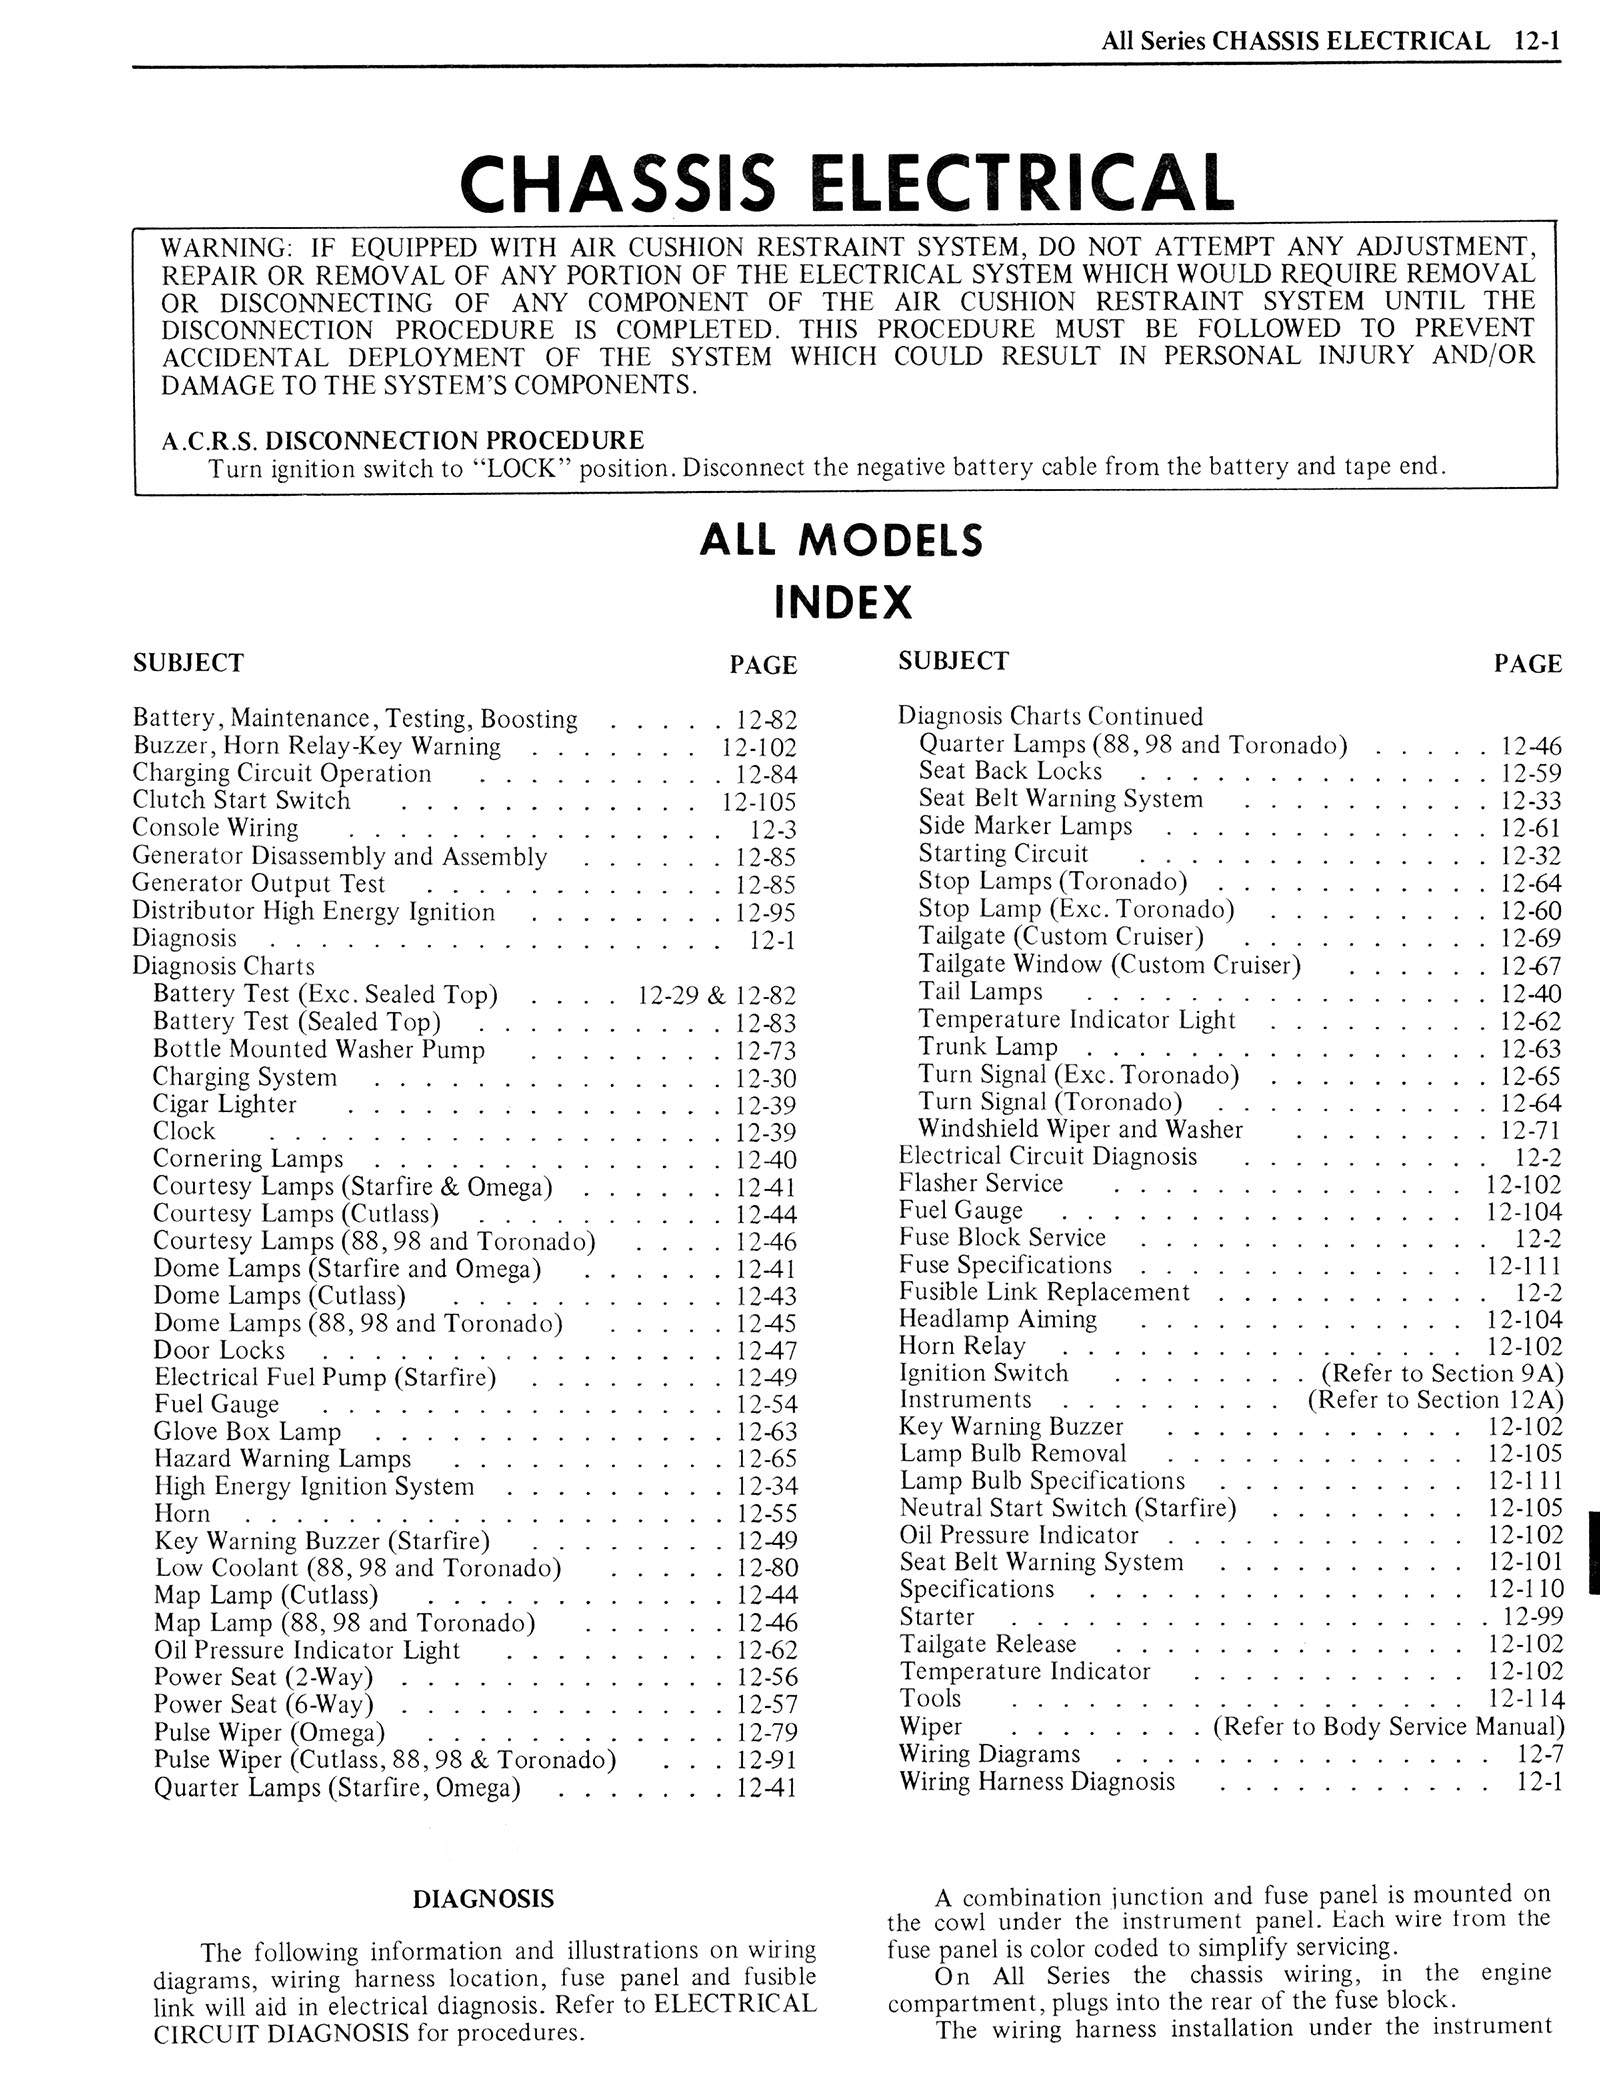 1976 Oldsmobile Service Manual page 1121 of 1390